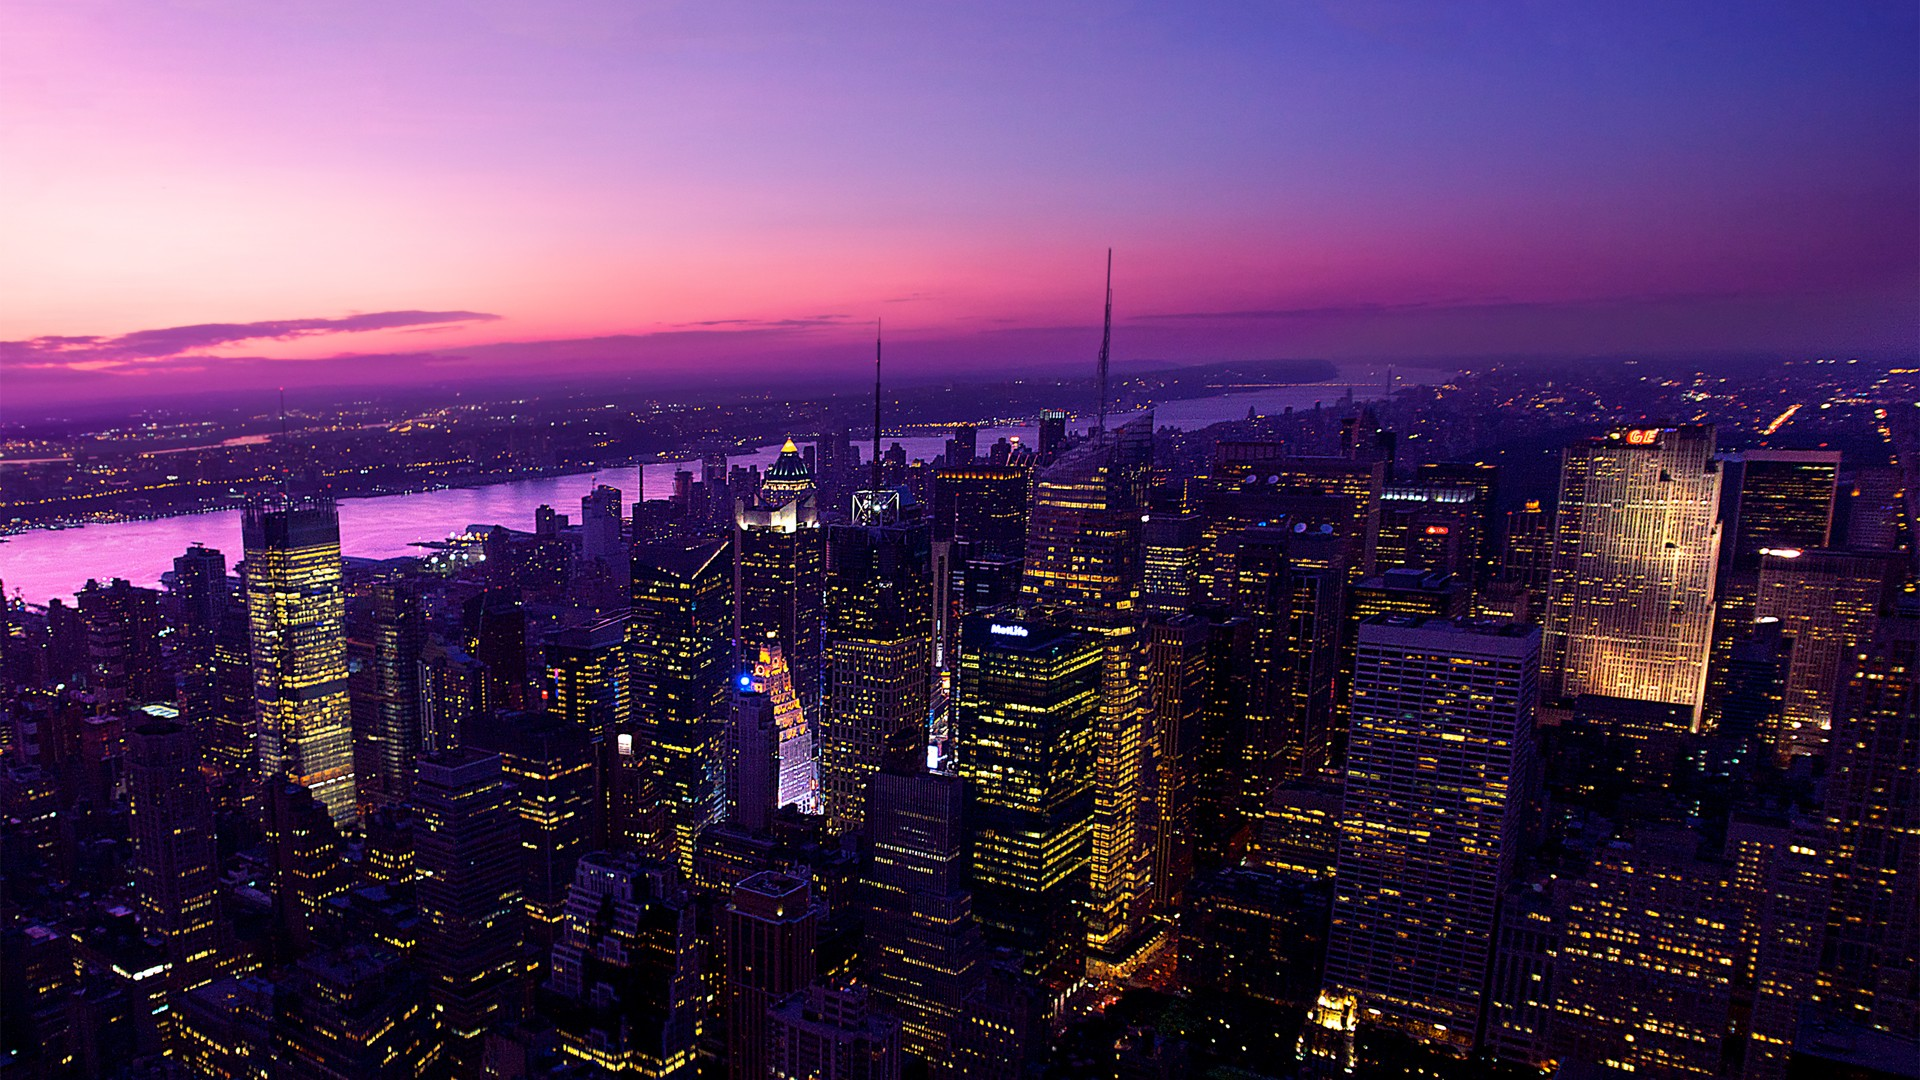 Iphone 5 Space Wallpaper Hd Twilight In New York City Wallpapers Hd Wallpapers Id